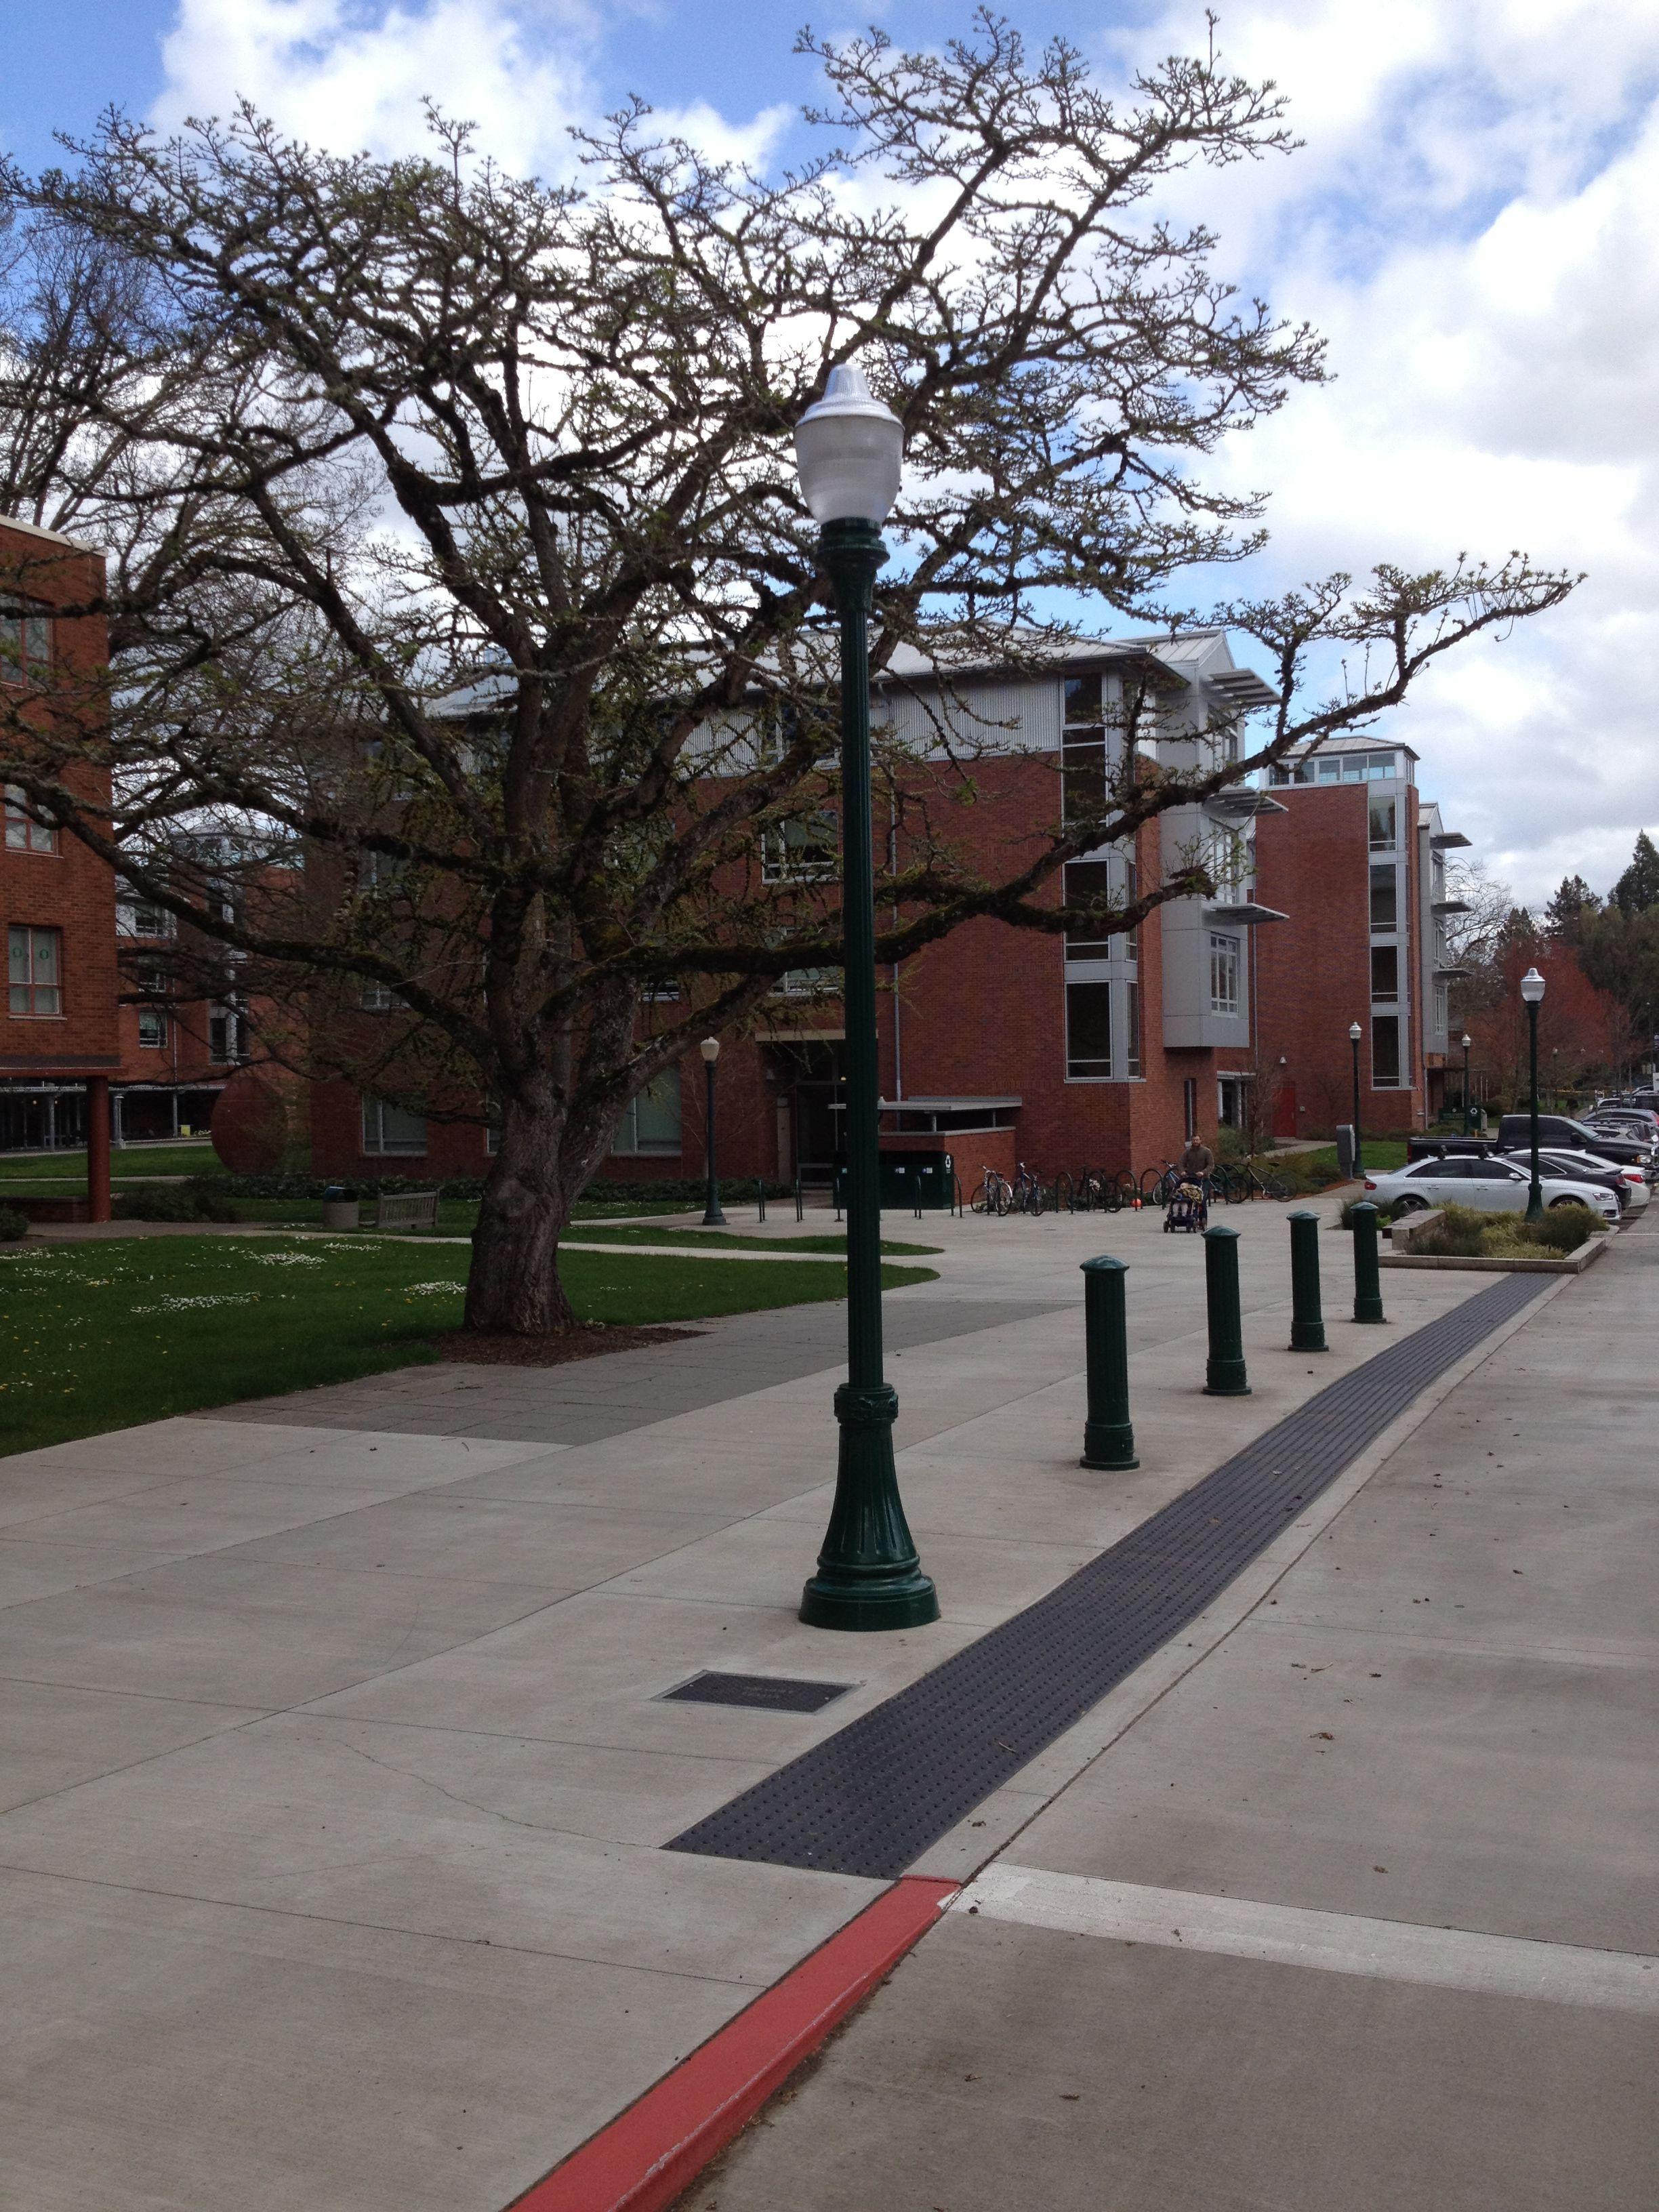 Streetscape To The North Of Hickory Click To Close: University Of Oregon, Eugene. #VISCO Bollards And Street